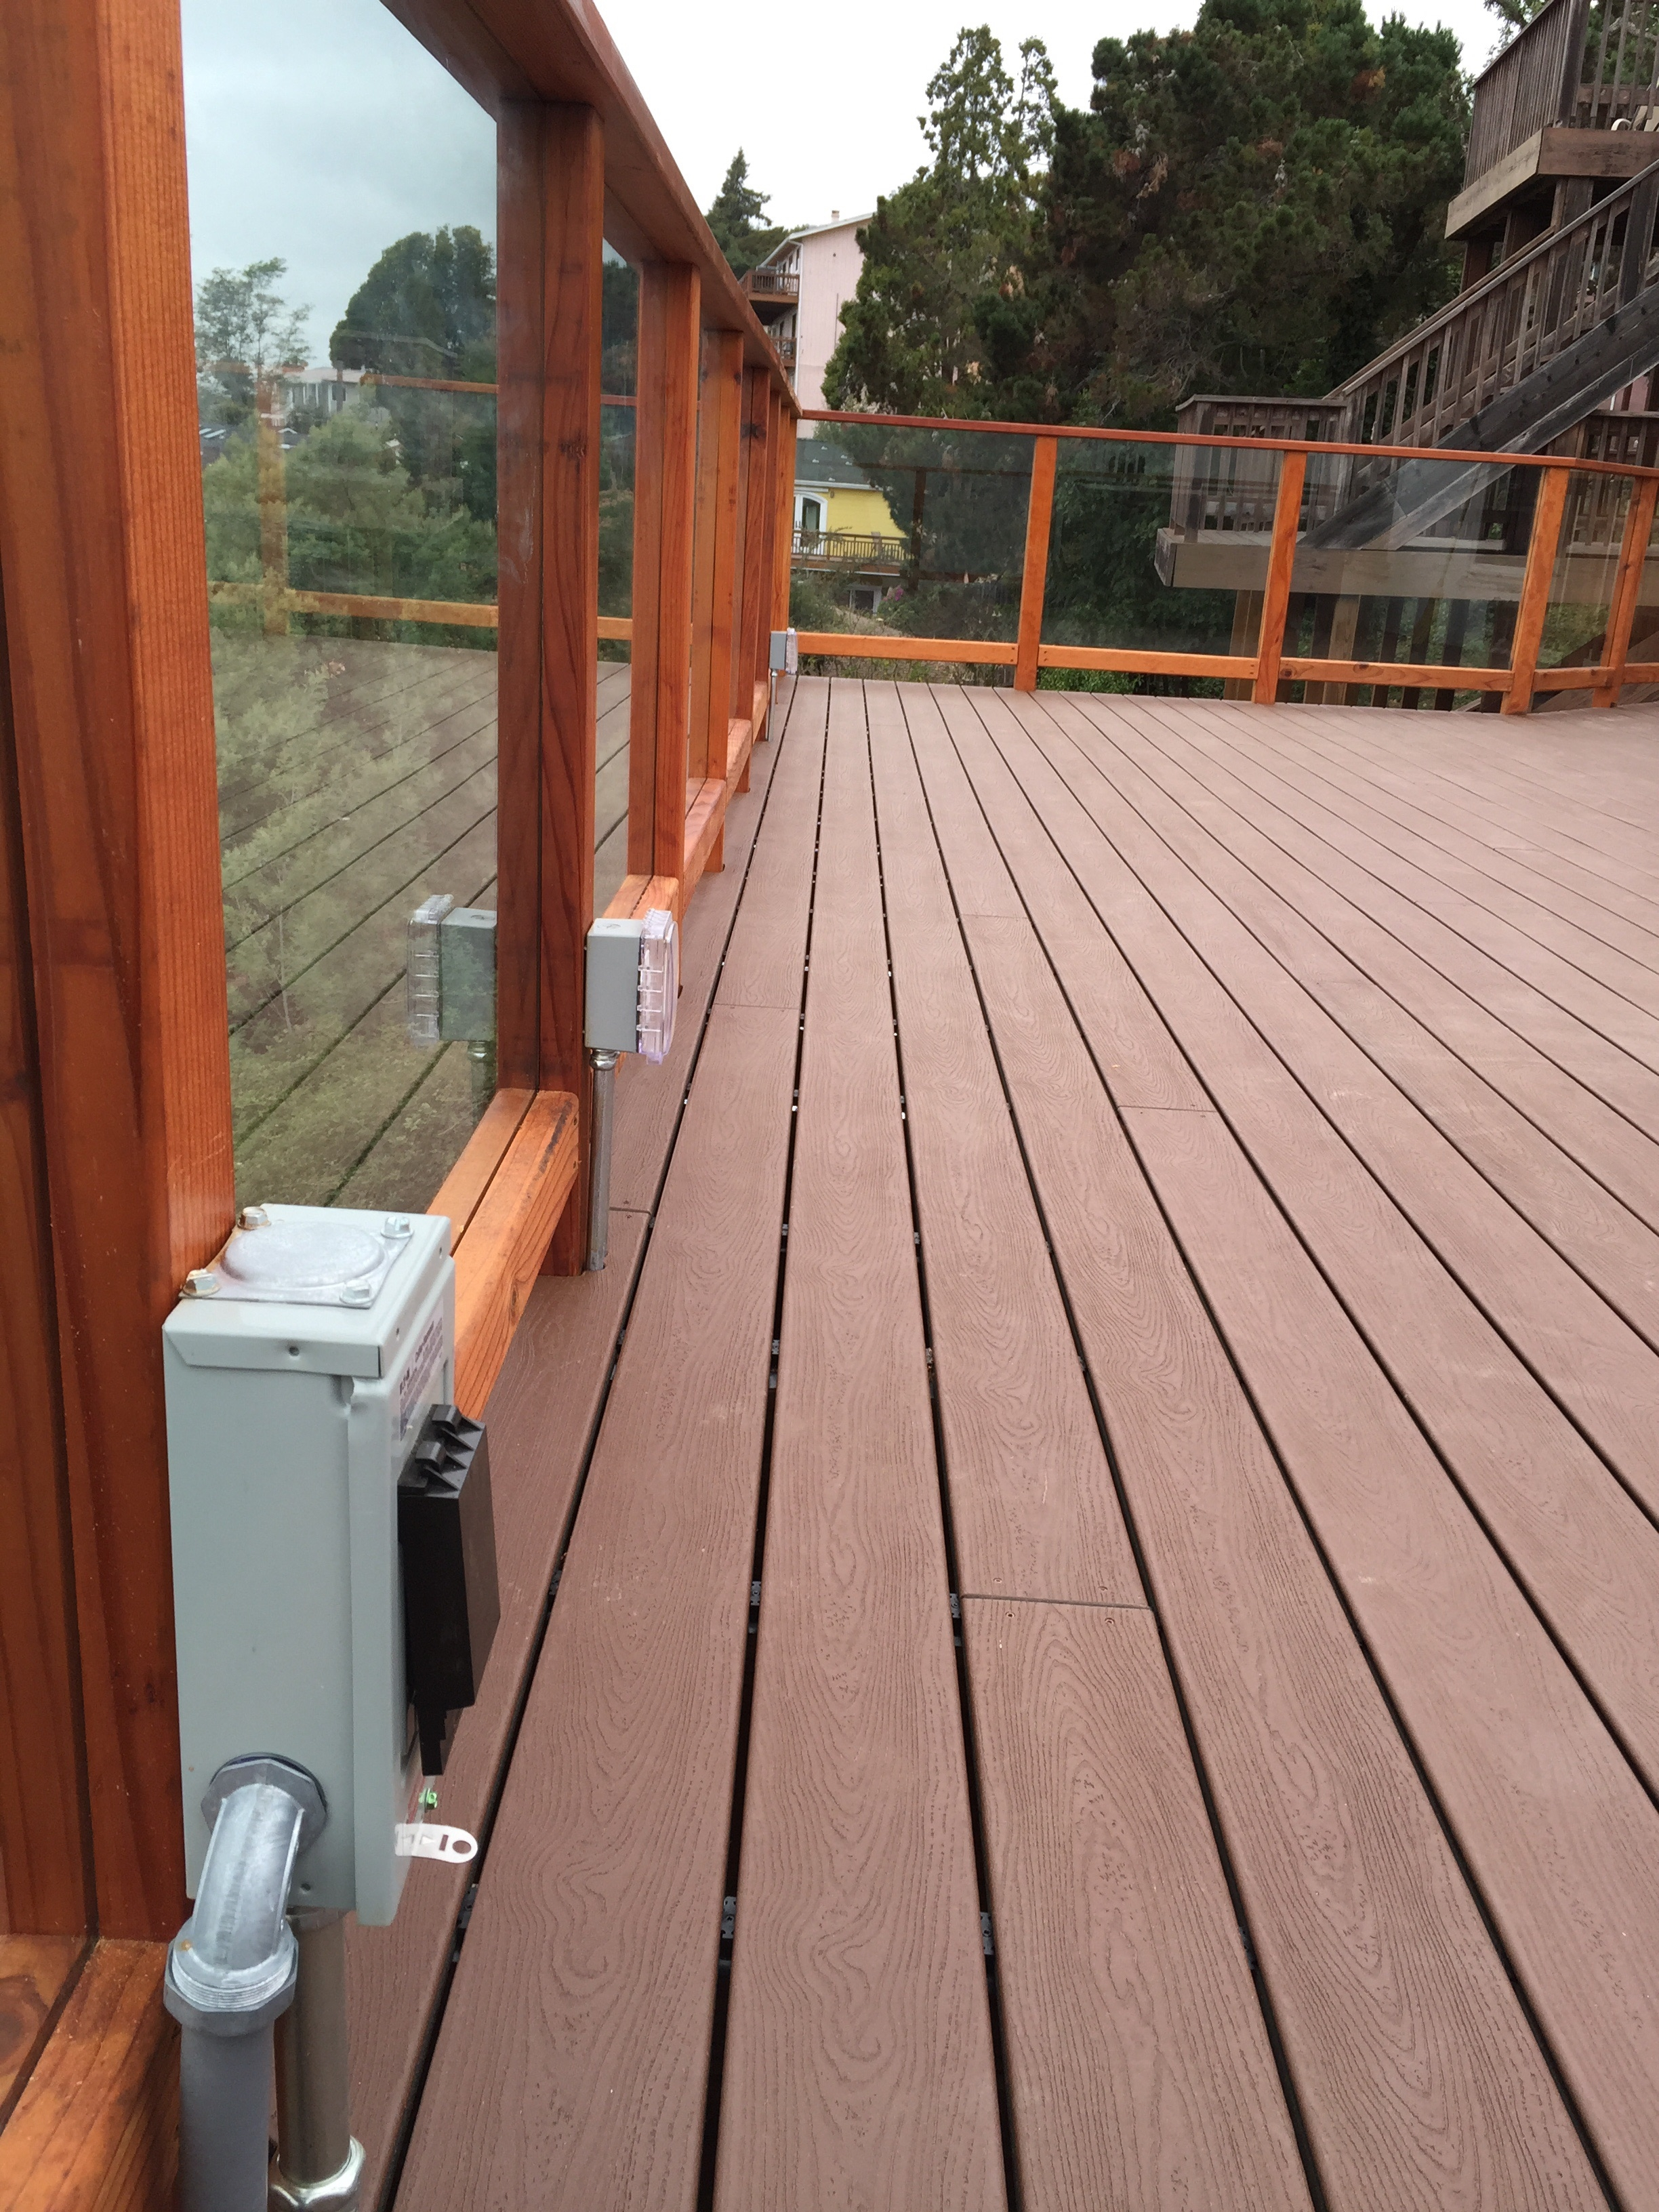 We used hidden fasteners on the decking for a cleaner look. 220 is wired in for the hot tub and additional outlets as well.